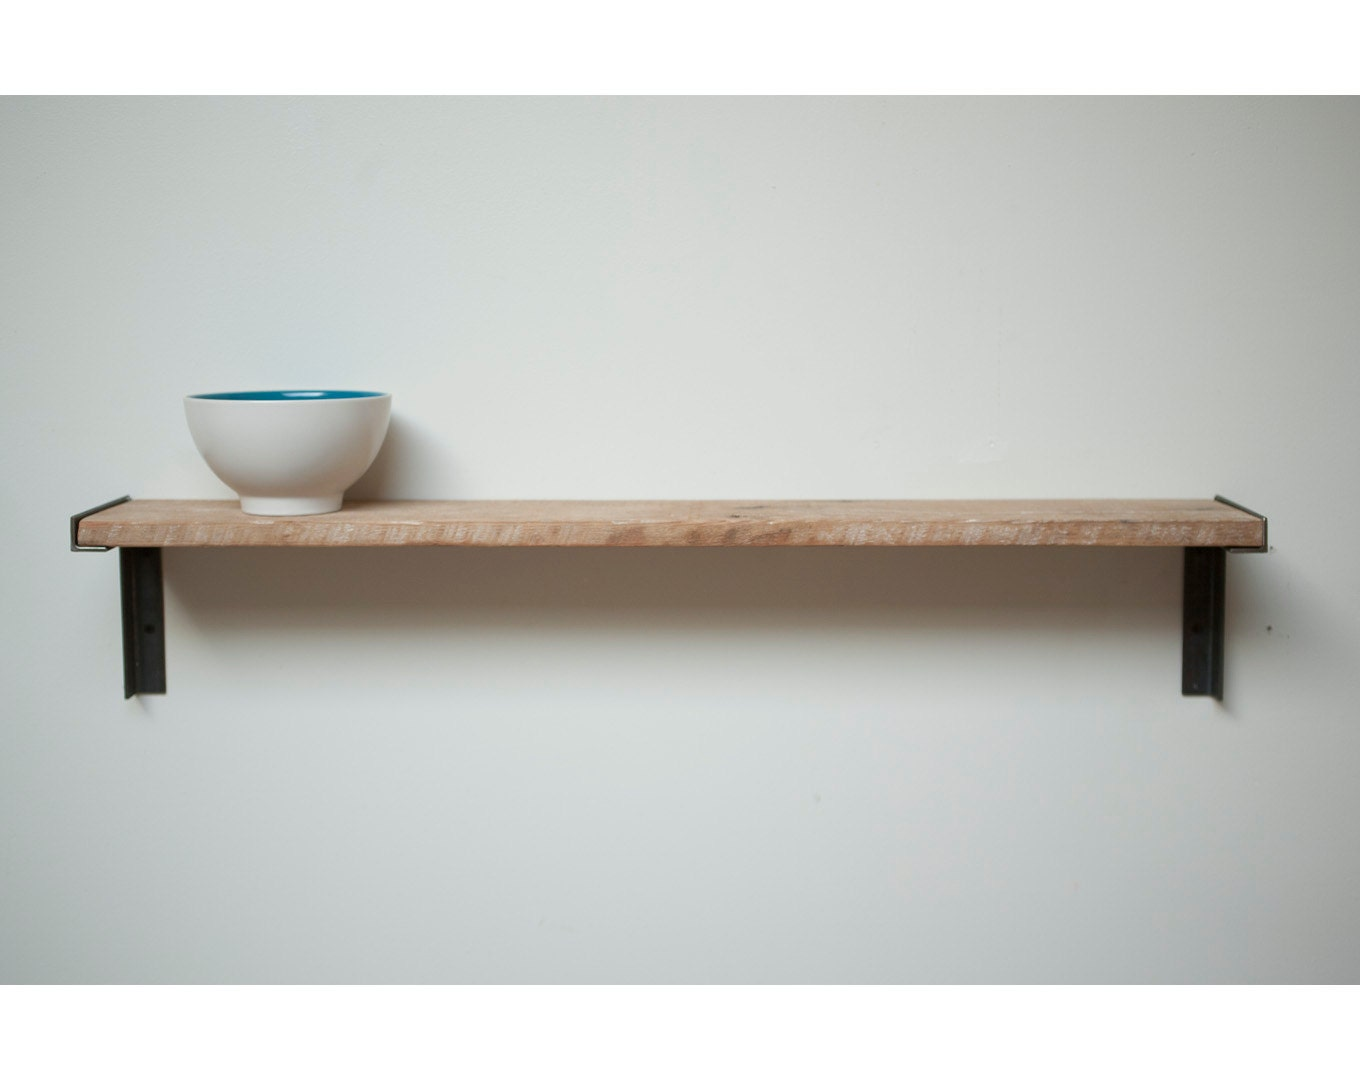 eko floating shelf deko wood new empty hex hexagon products